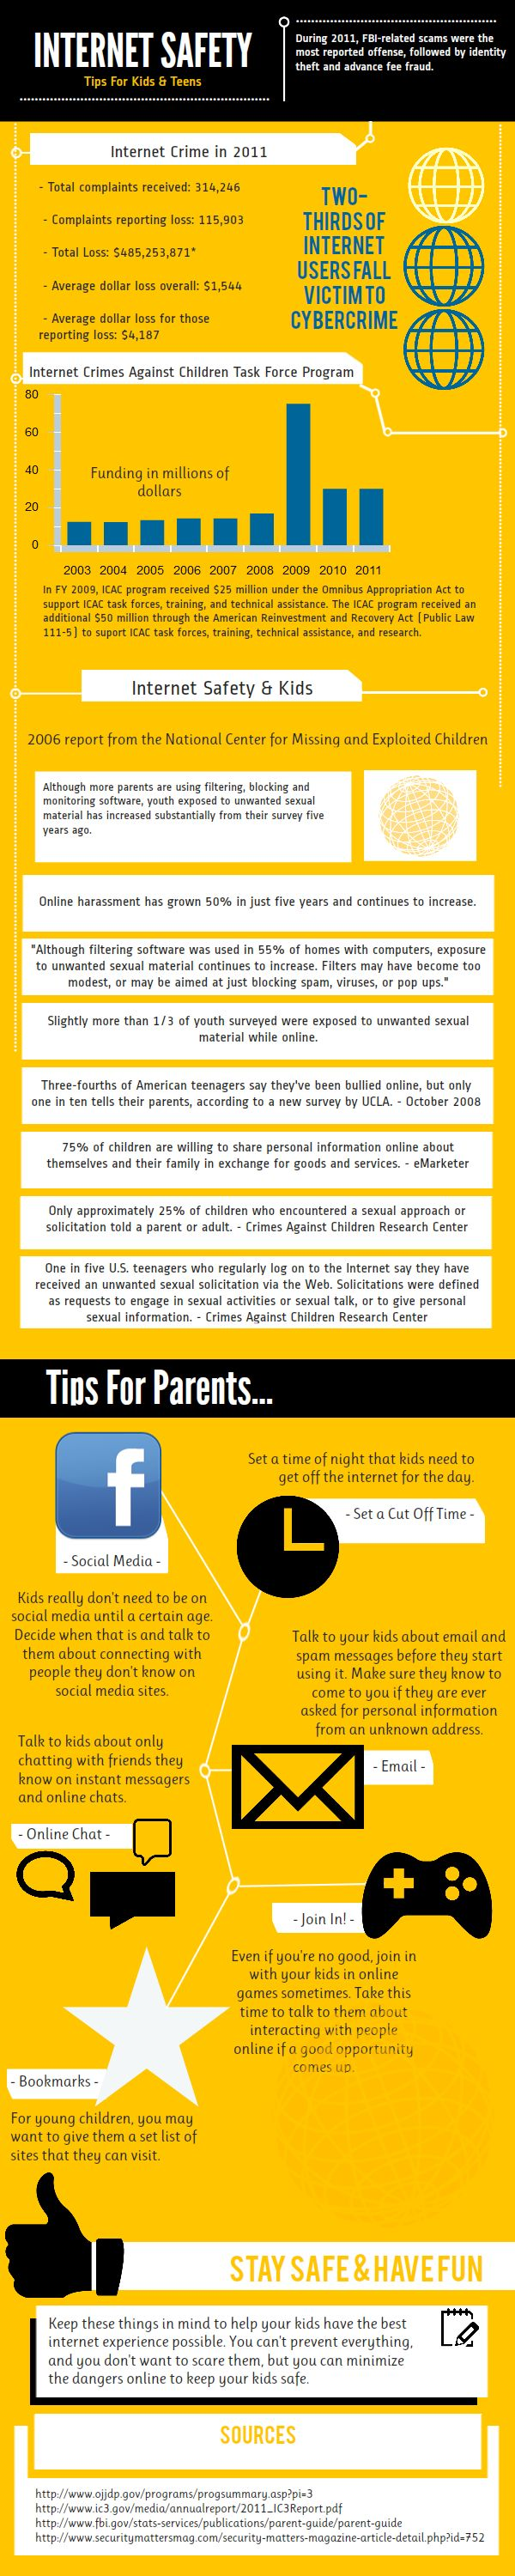 Teen Internet Safety Survey - Cox Communications